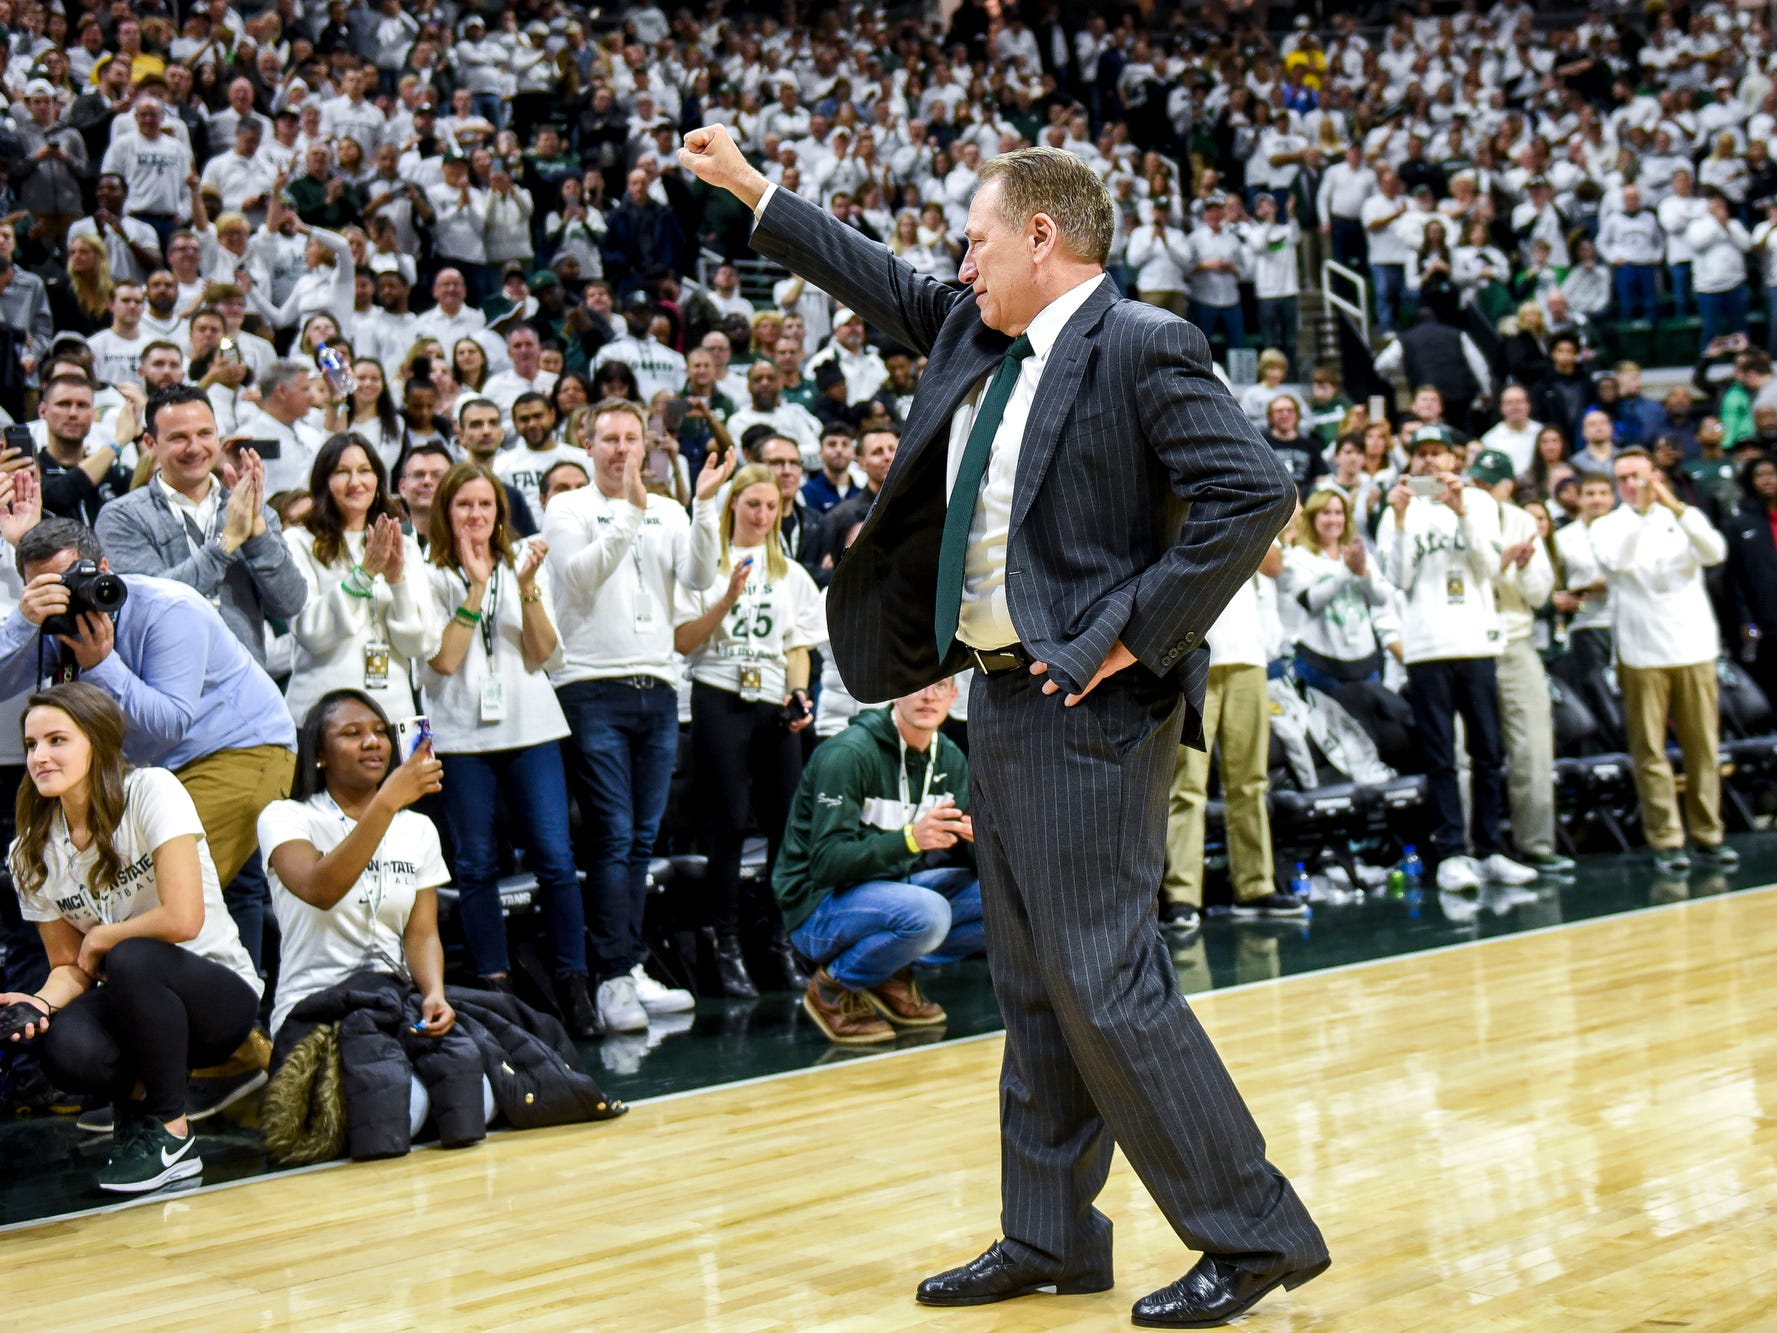 Michigan State's head coach Tom Izzo addresses the crowd  after beating Michigan 75-63 on Saturday, March 9, 2019, at the Breslin Center in East Lansing.